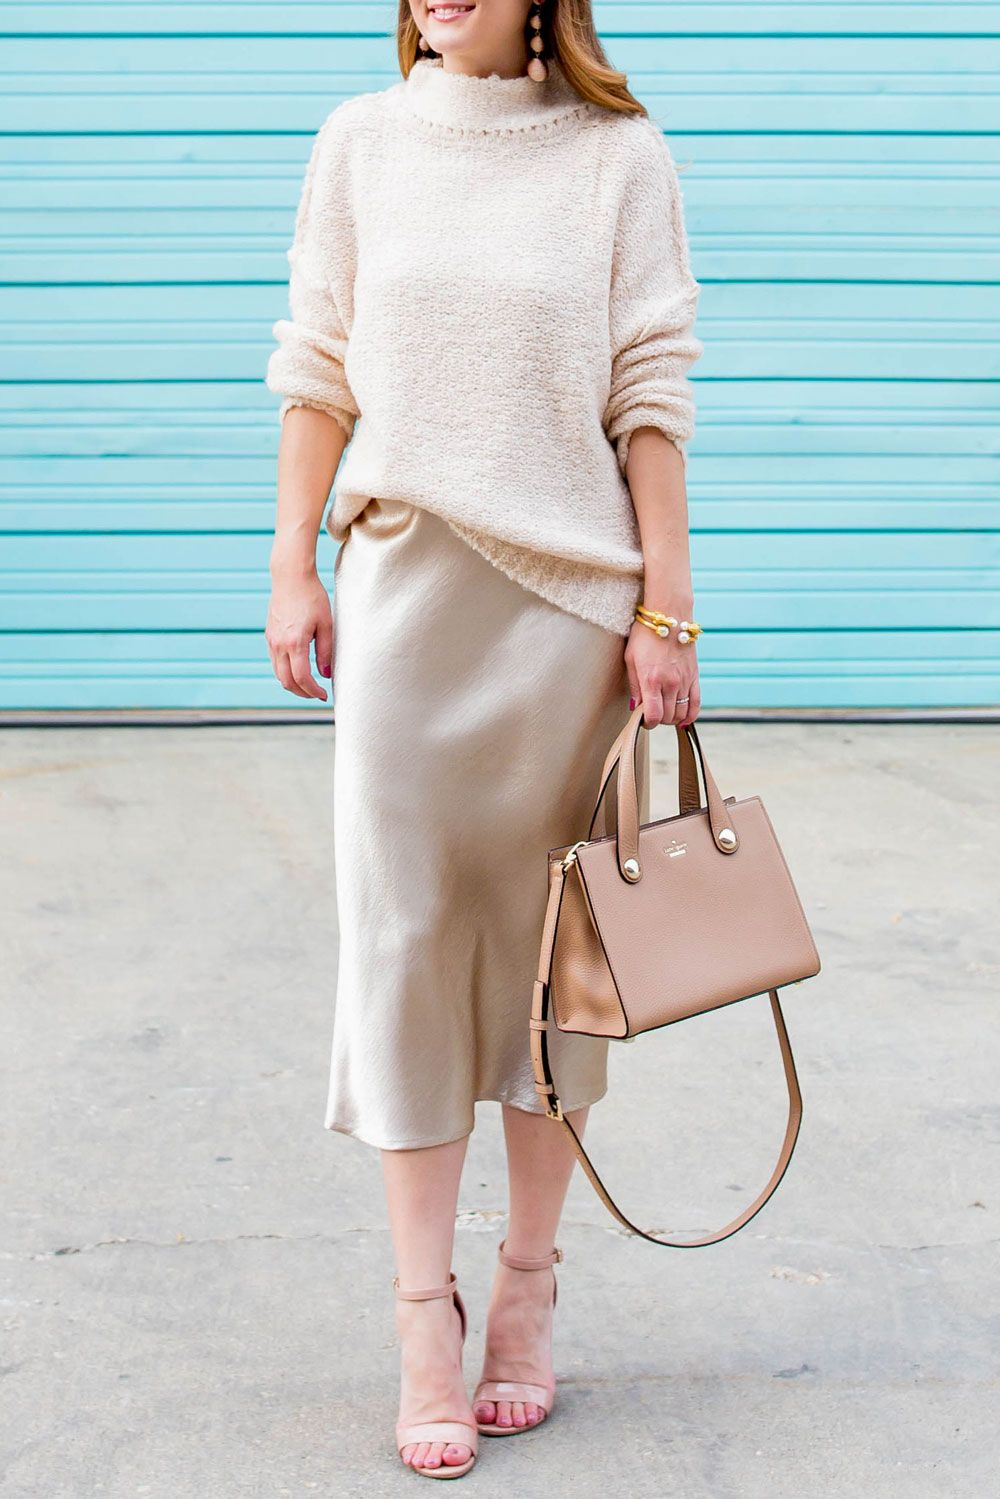 d744ad5135ea3 Oversized Sweater and Metallic Skirt - Love a cozy sweater over delicate  fabric.